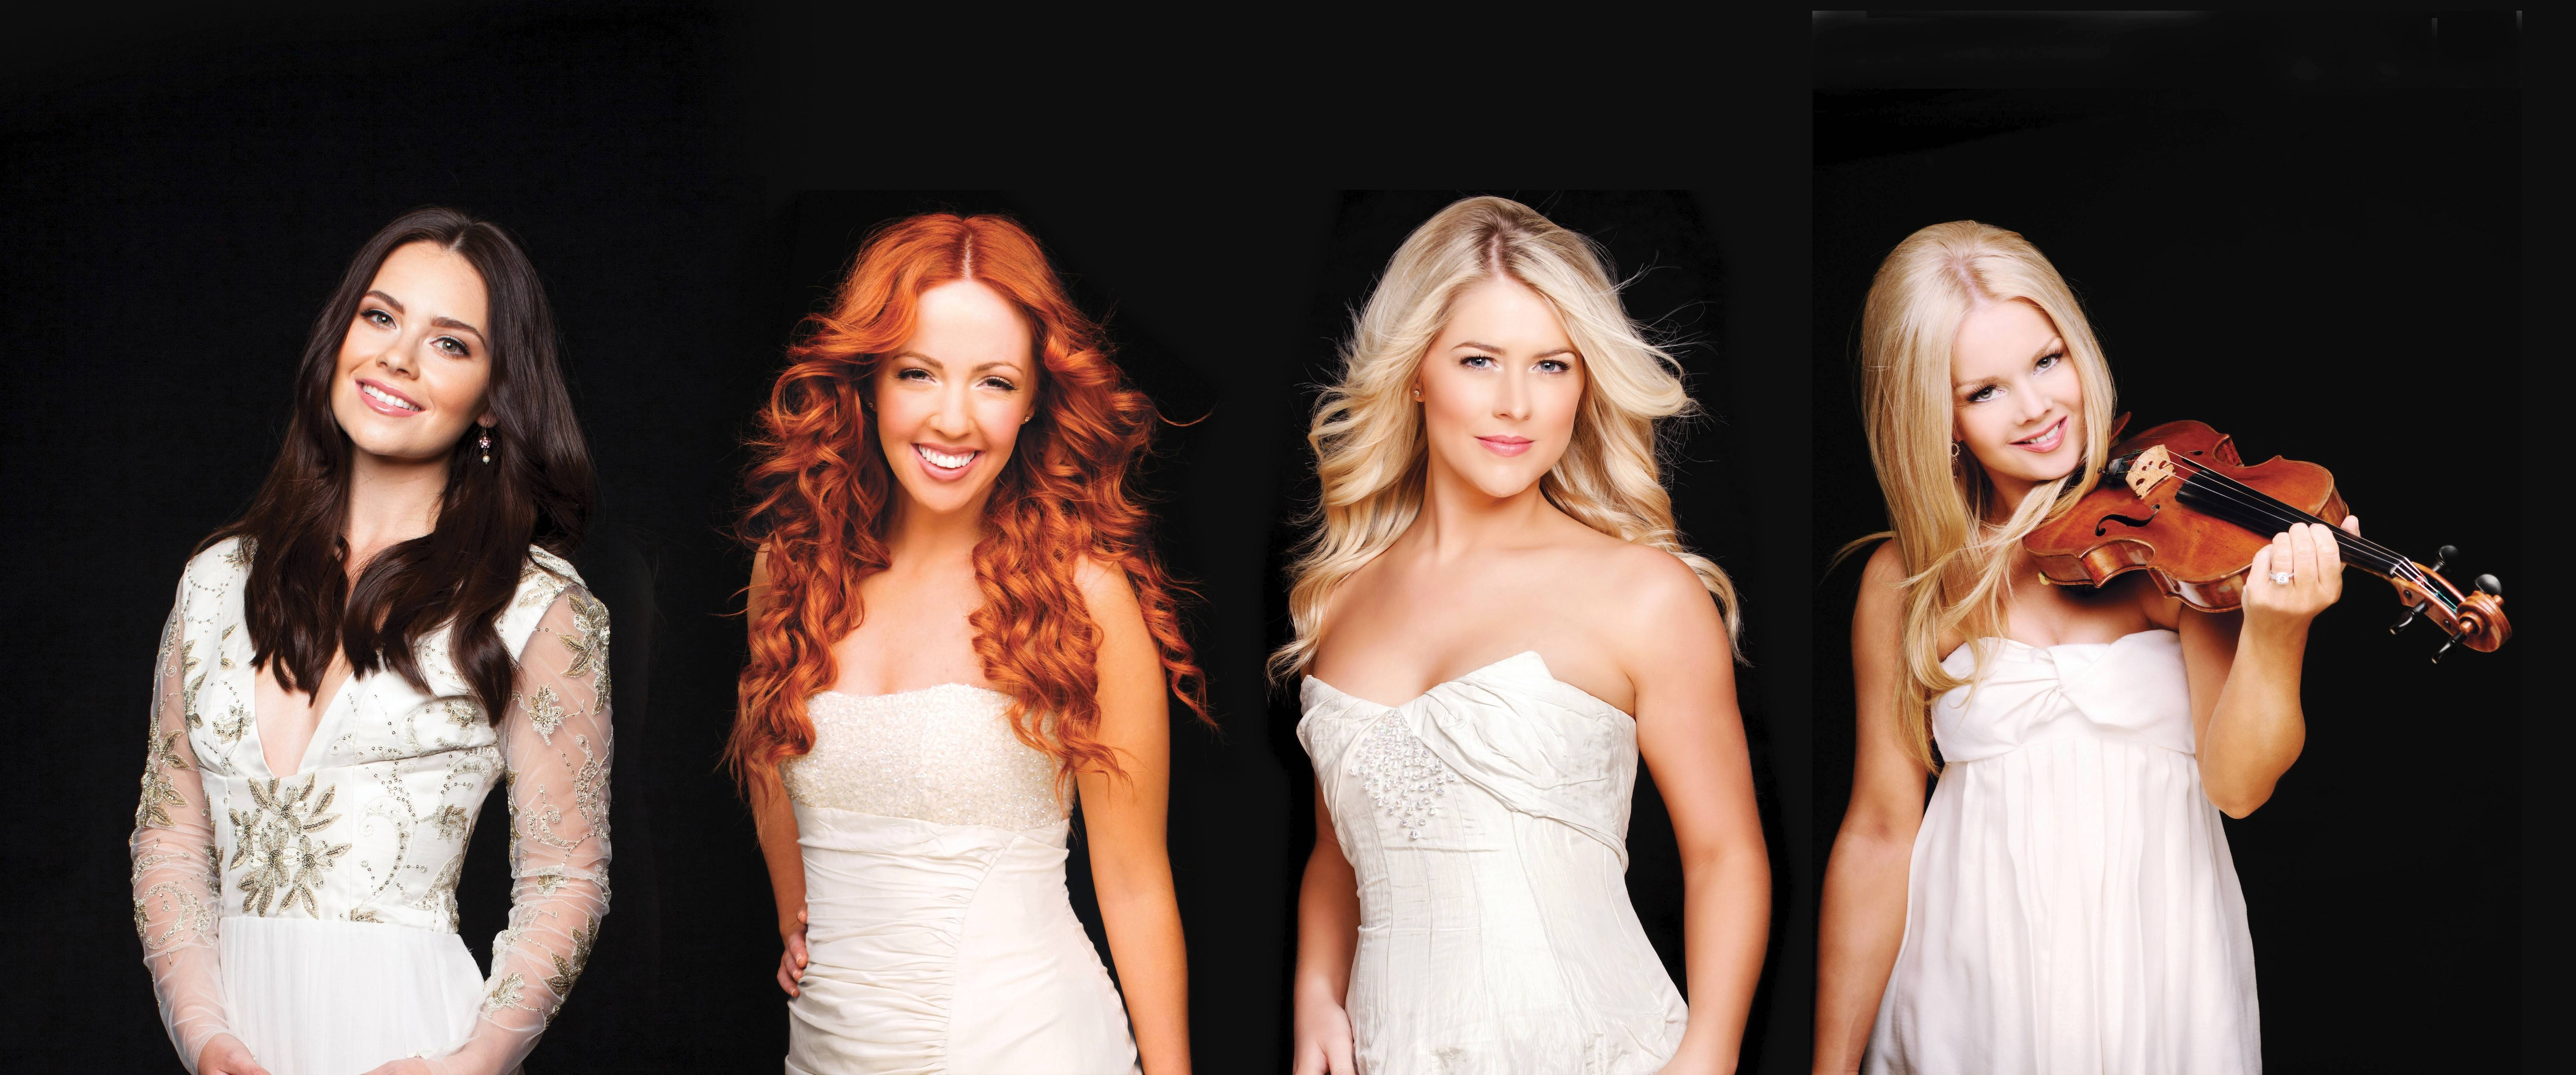 Celtic Woman -- featuring Mairead Carlin, left, Lisa Lambe, Susan McFadden and Mairead Nesbitt -- performs Sunday at the Chicago Theatre.